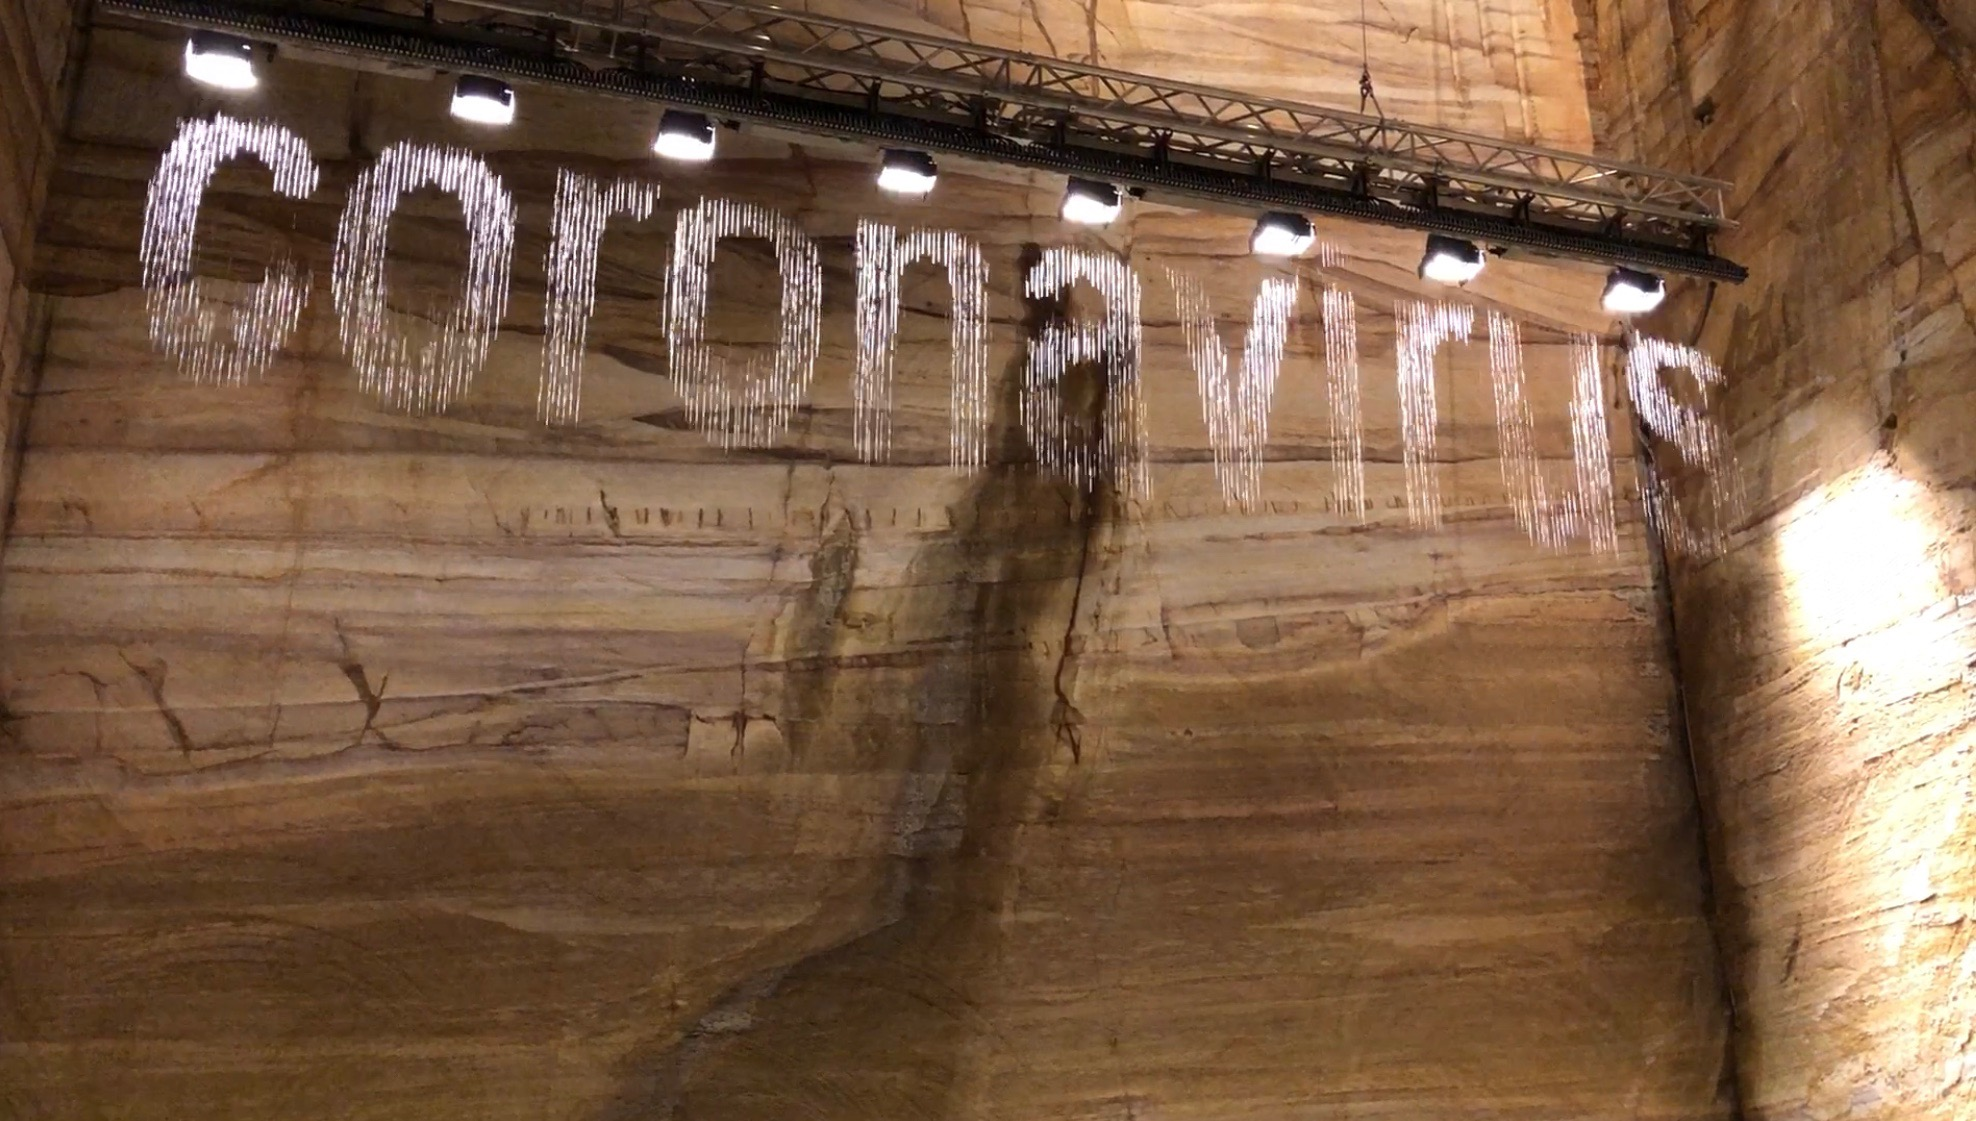 The coronavirus has been featuring in this artistic installation at MONA in Hobart. Bit Fall, by German artist Julius pop, drips words from real-time Google searches. Photograph, Mitchell Ward